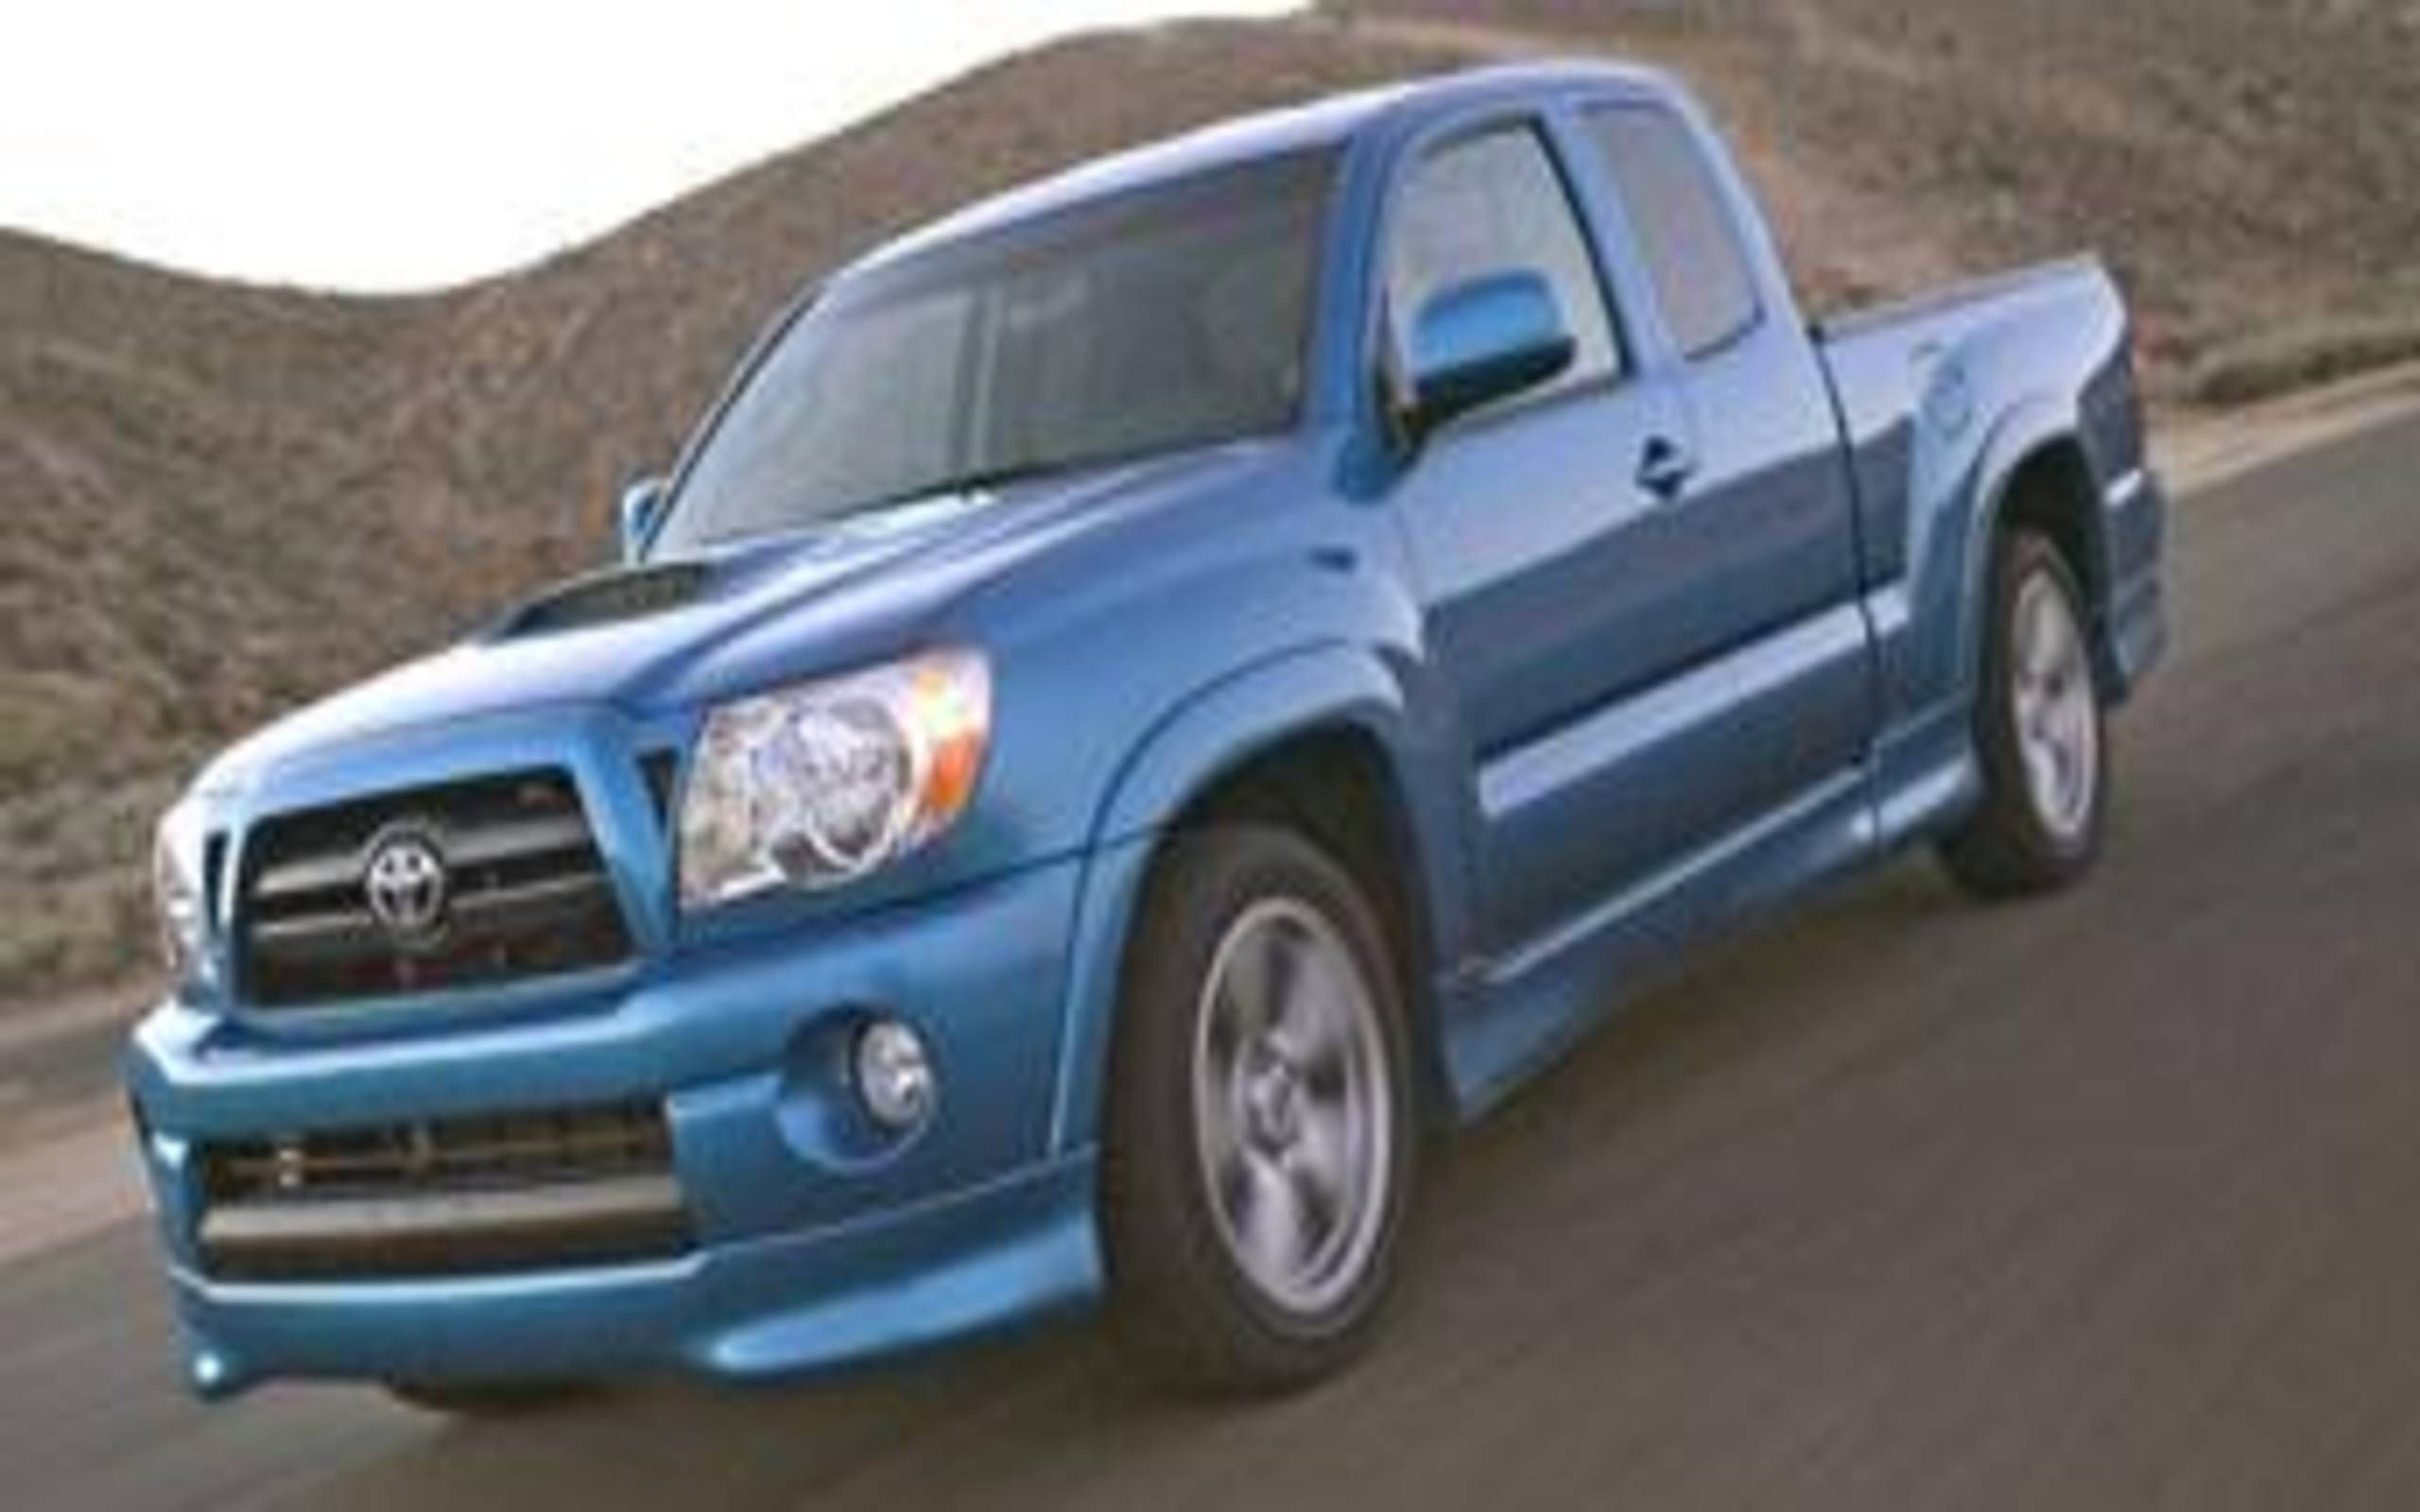 2005 Toyota Tacoma X Runner From Funky To Workhorse A Truck To Please Everyone